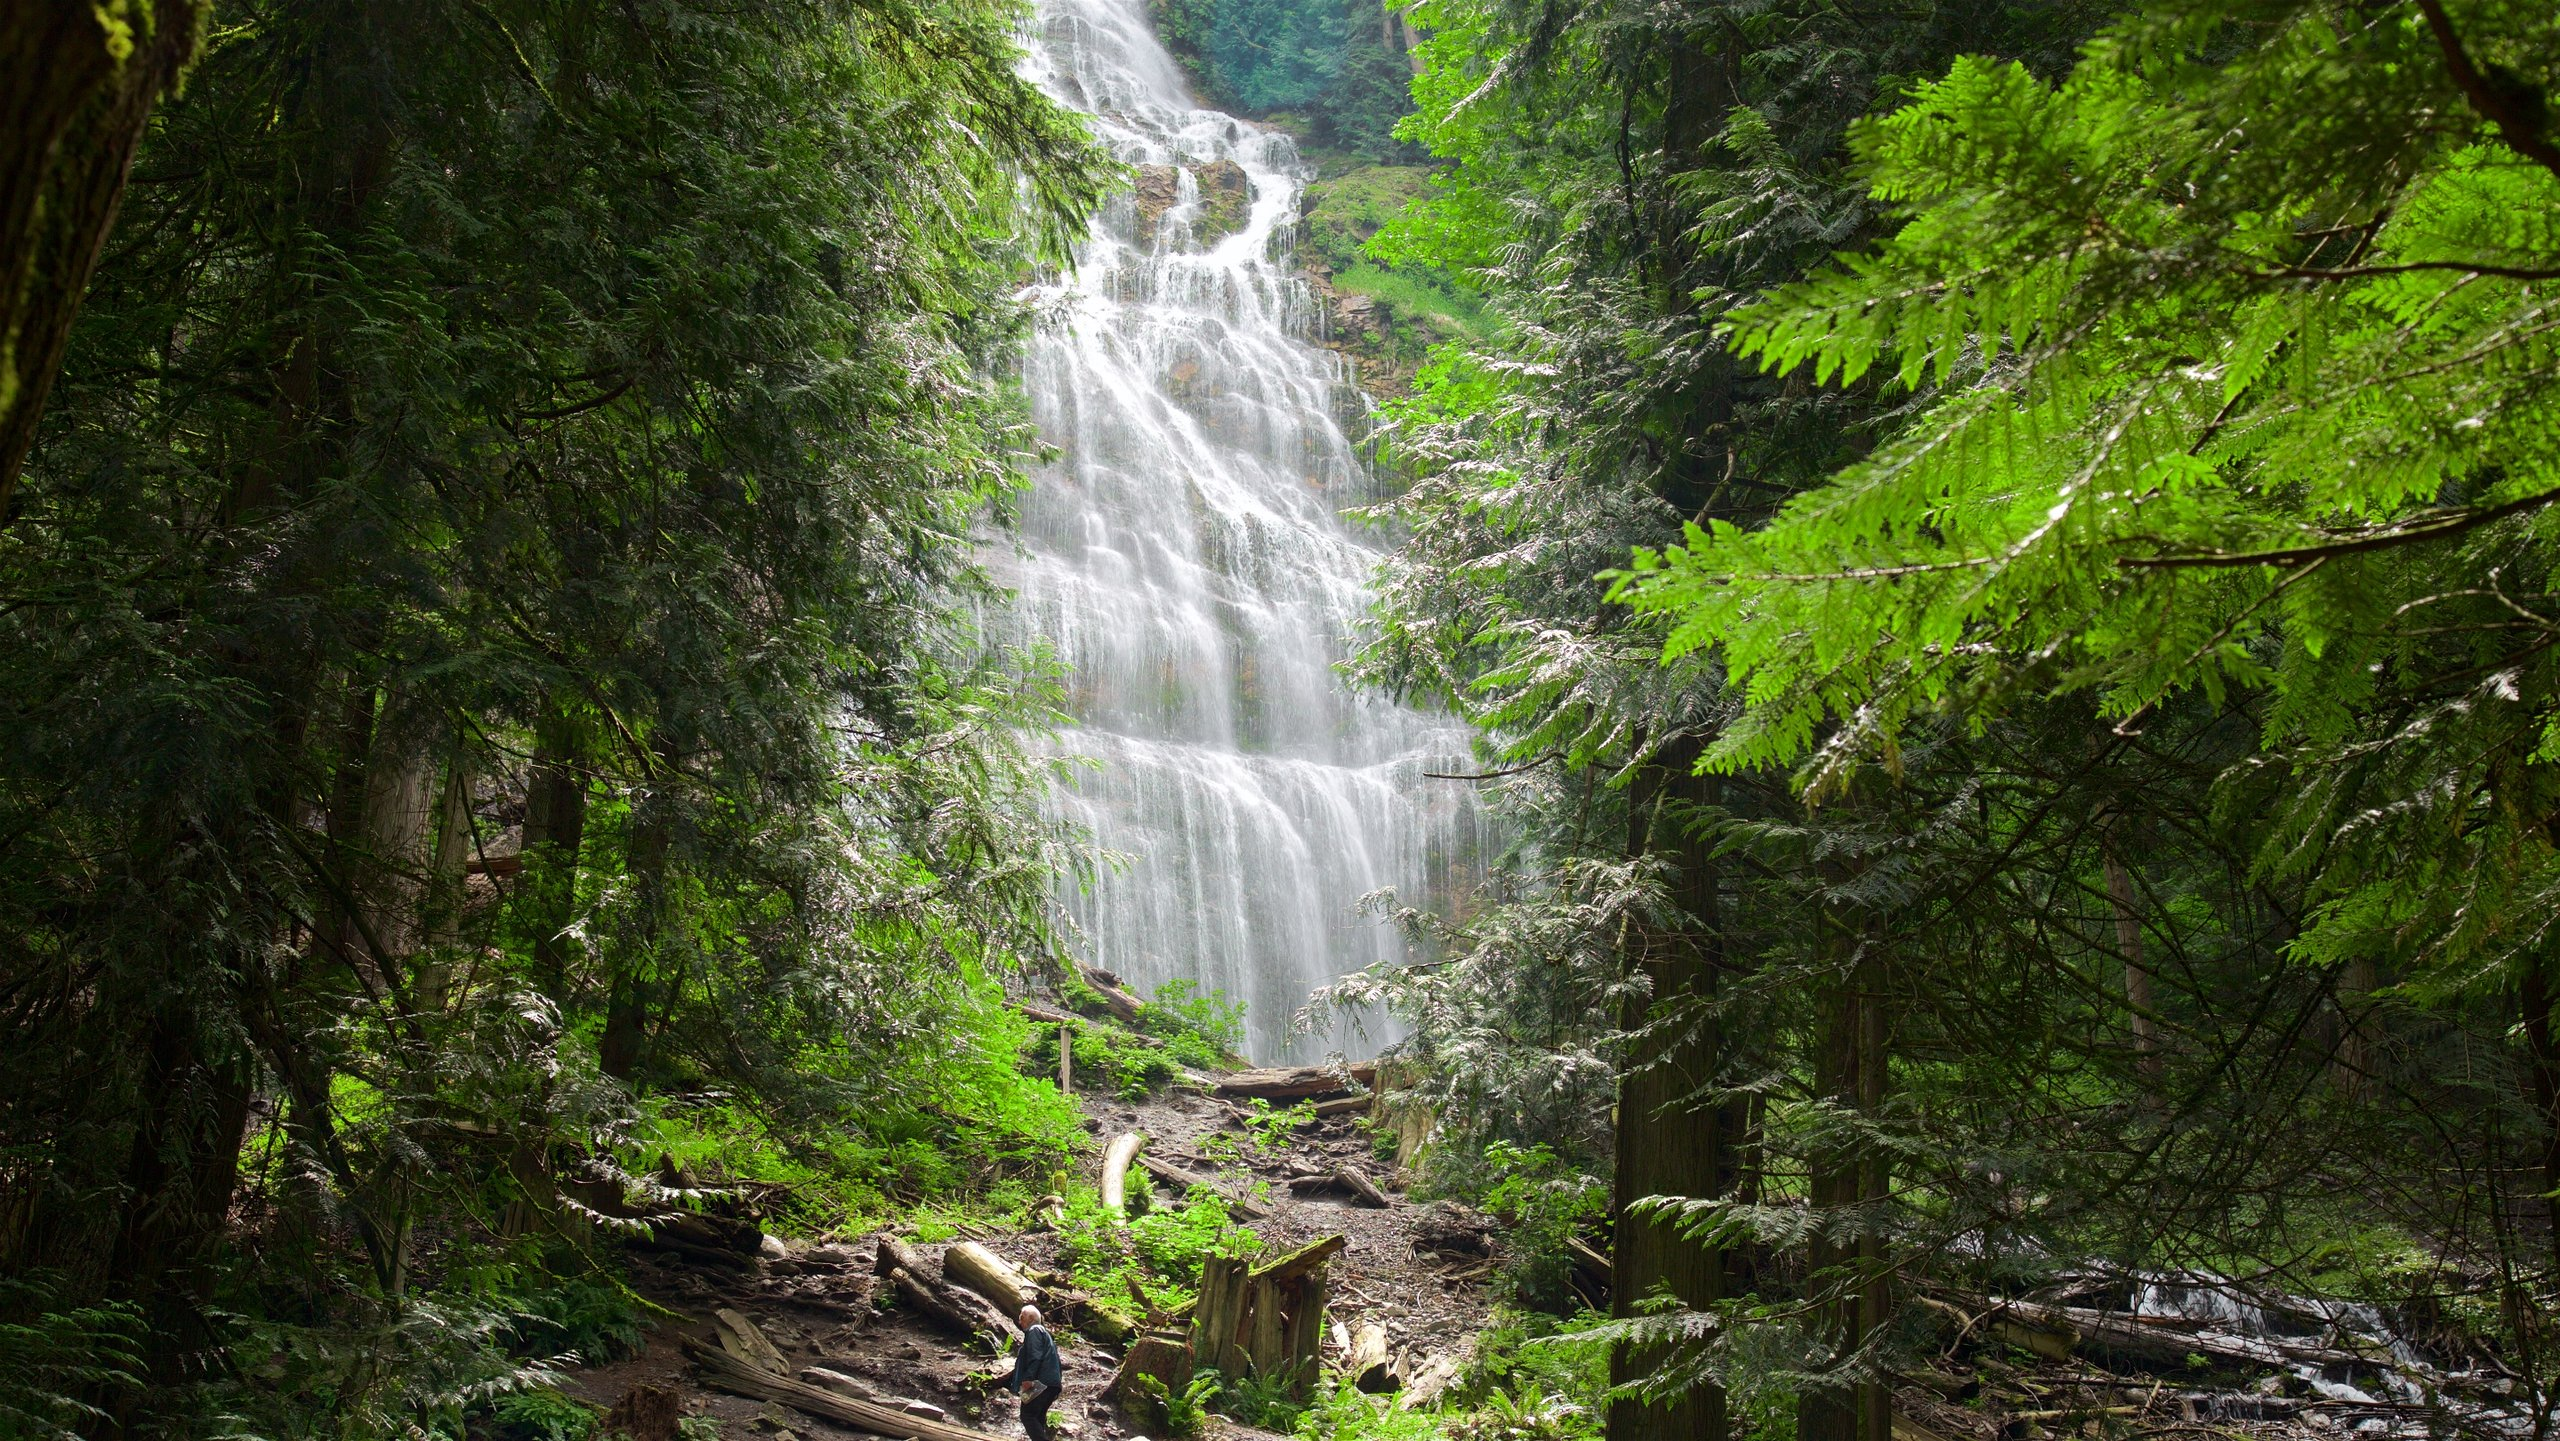 Bridal Veil Falls showing forest scenes and a cascade